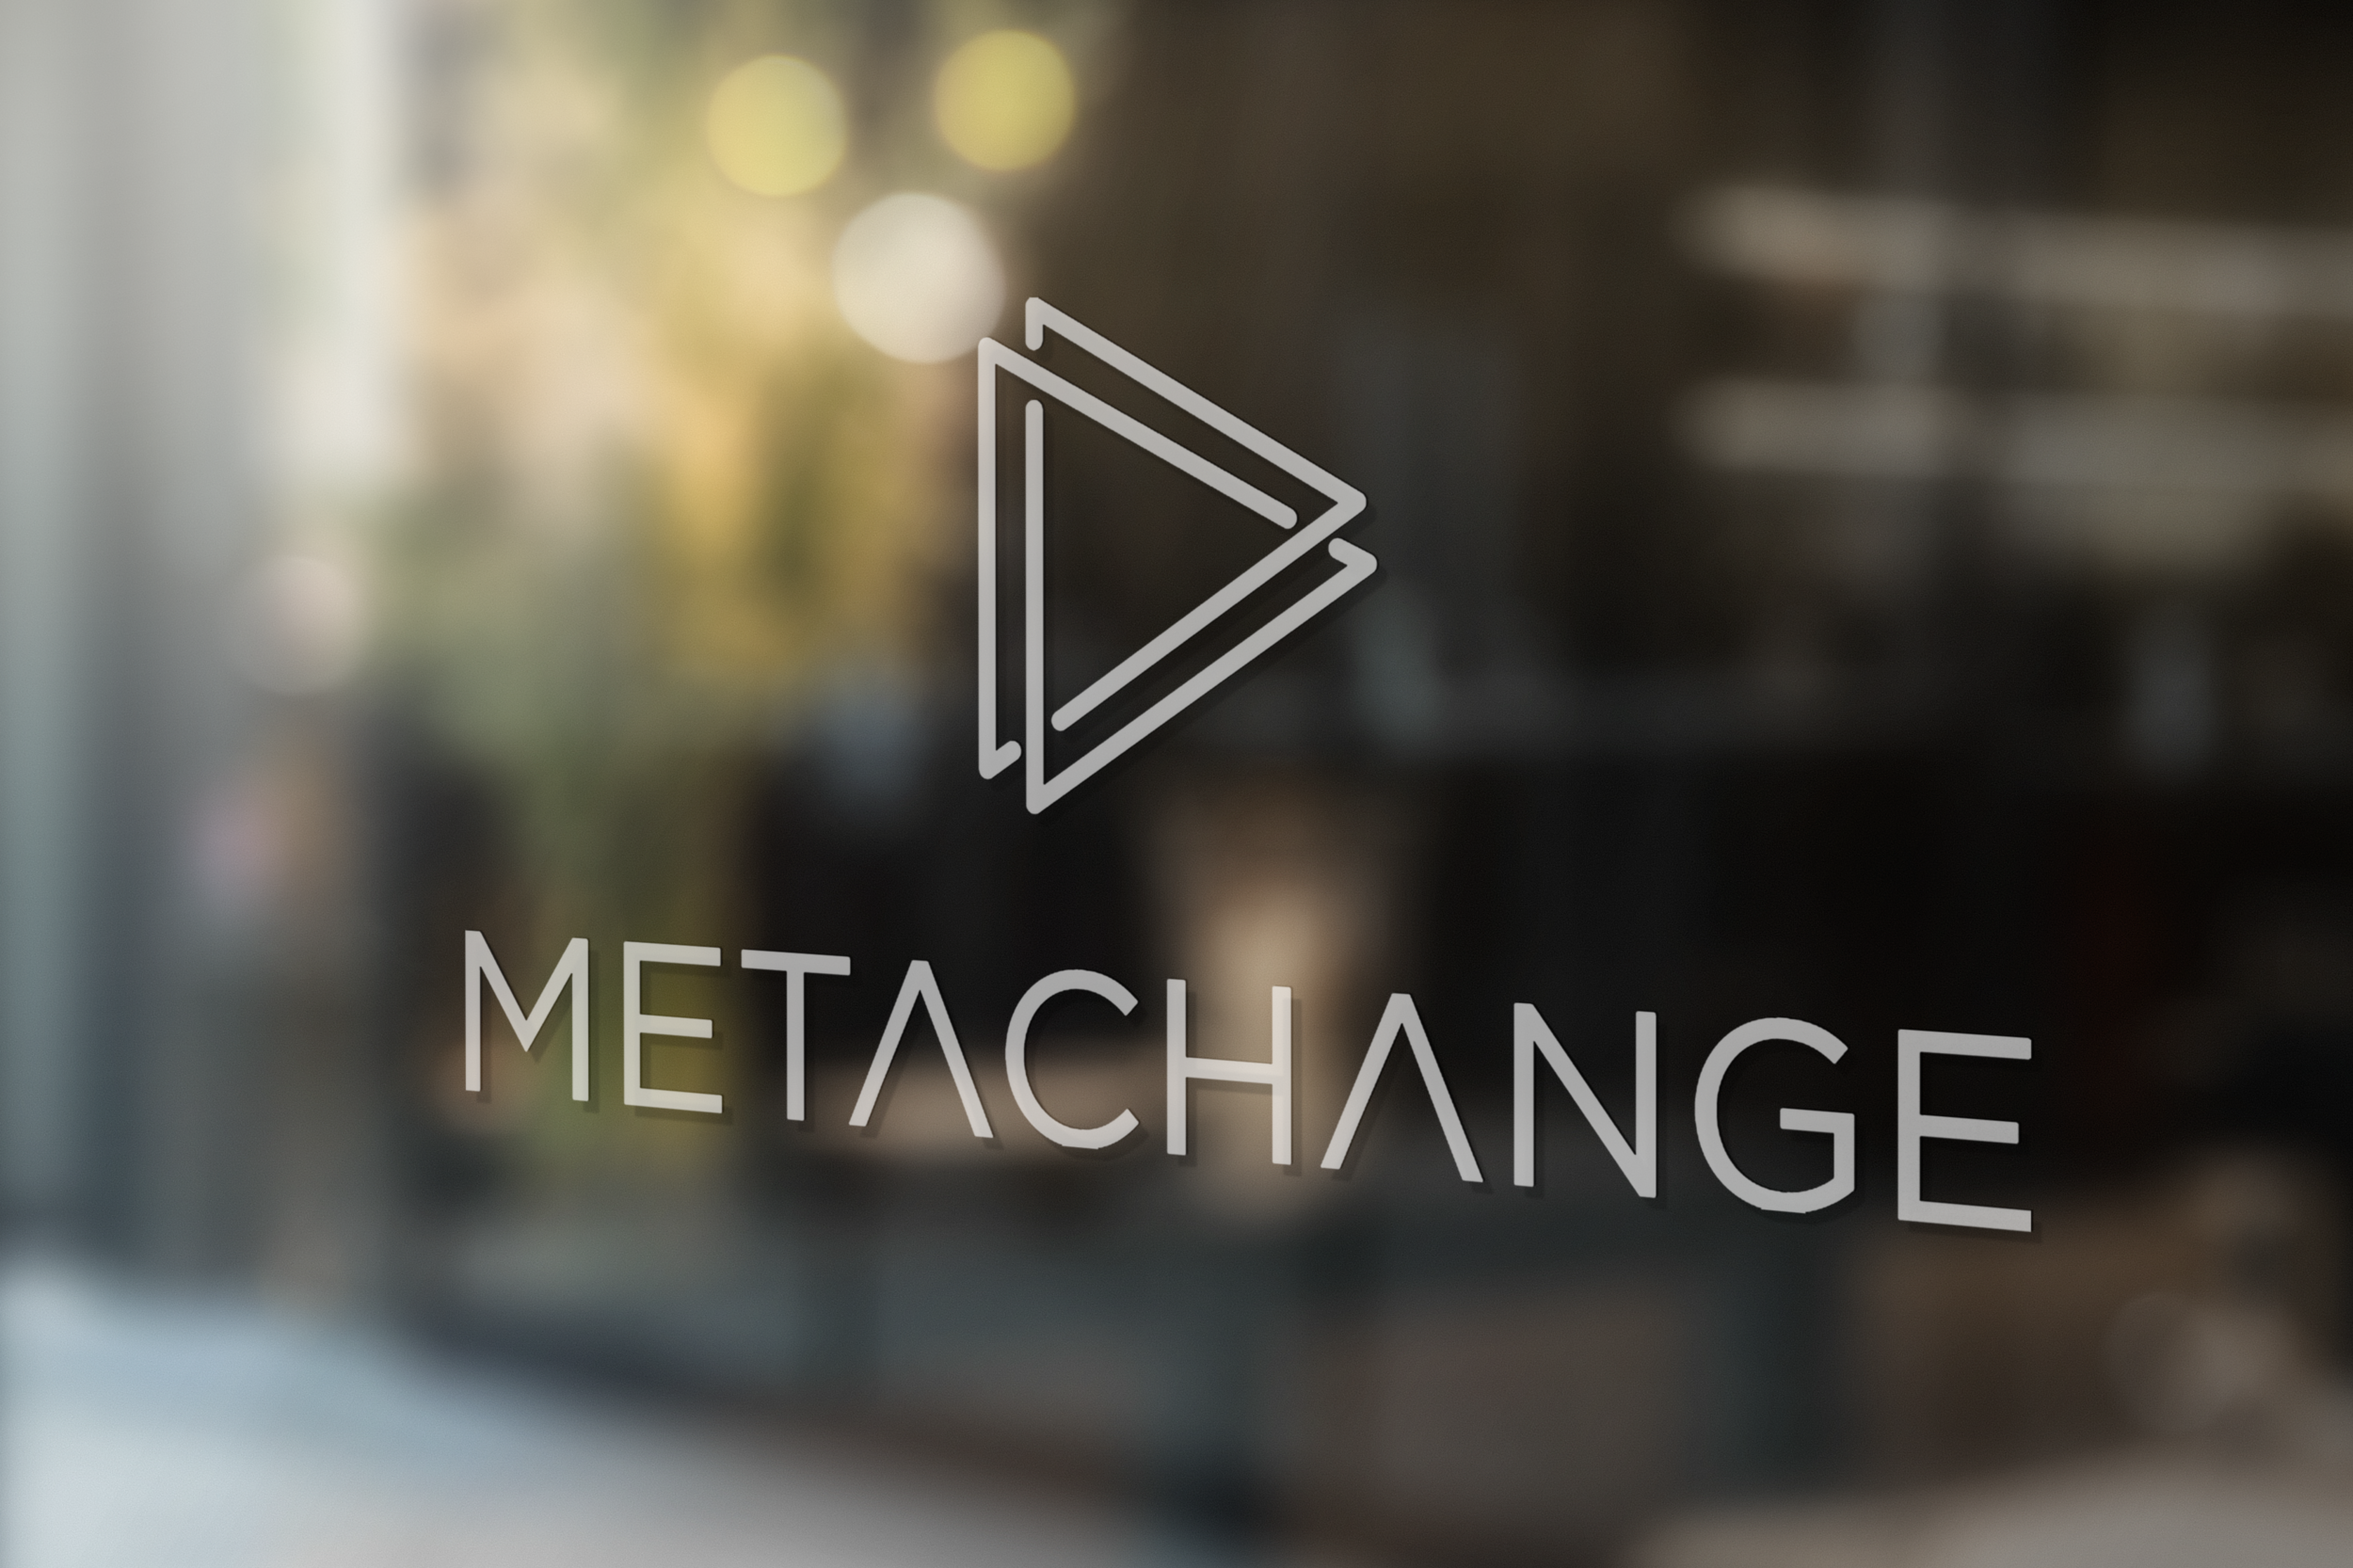 Window Signage Mockup-metachange.png